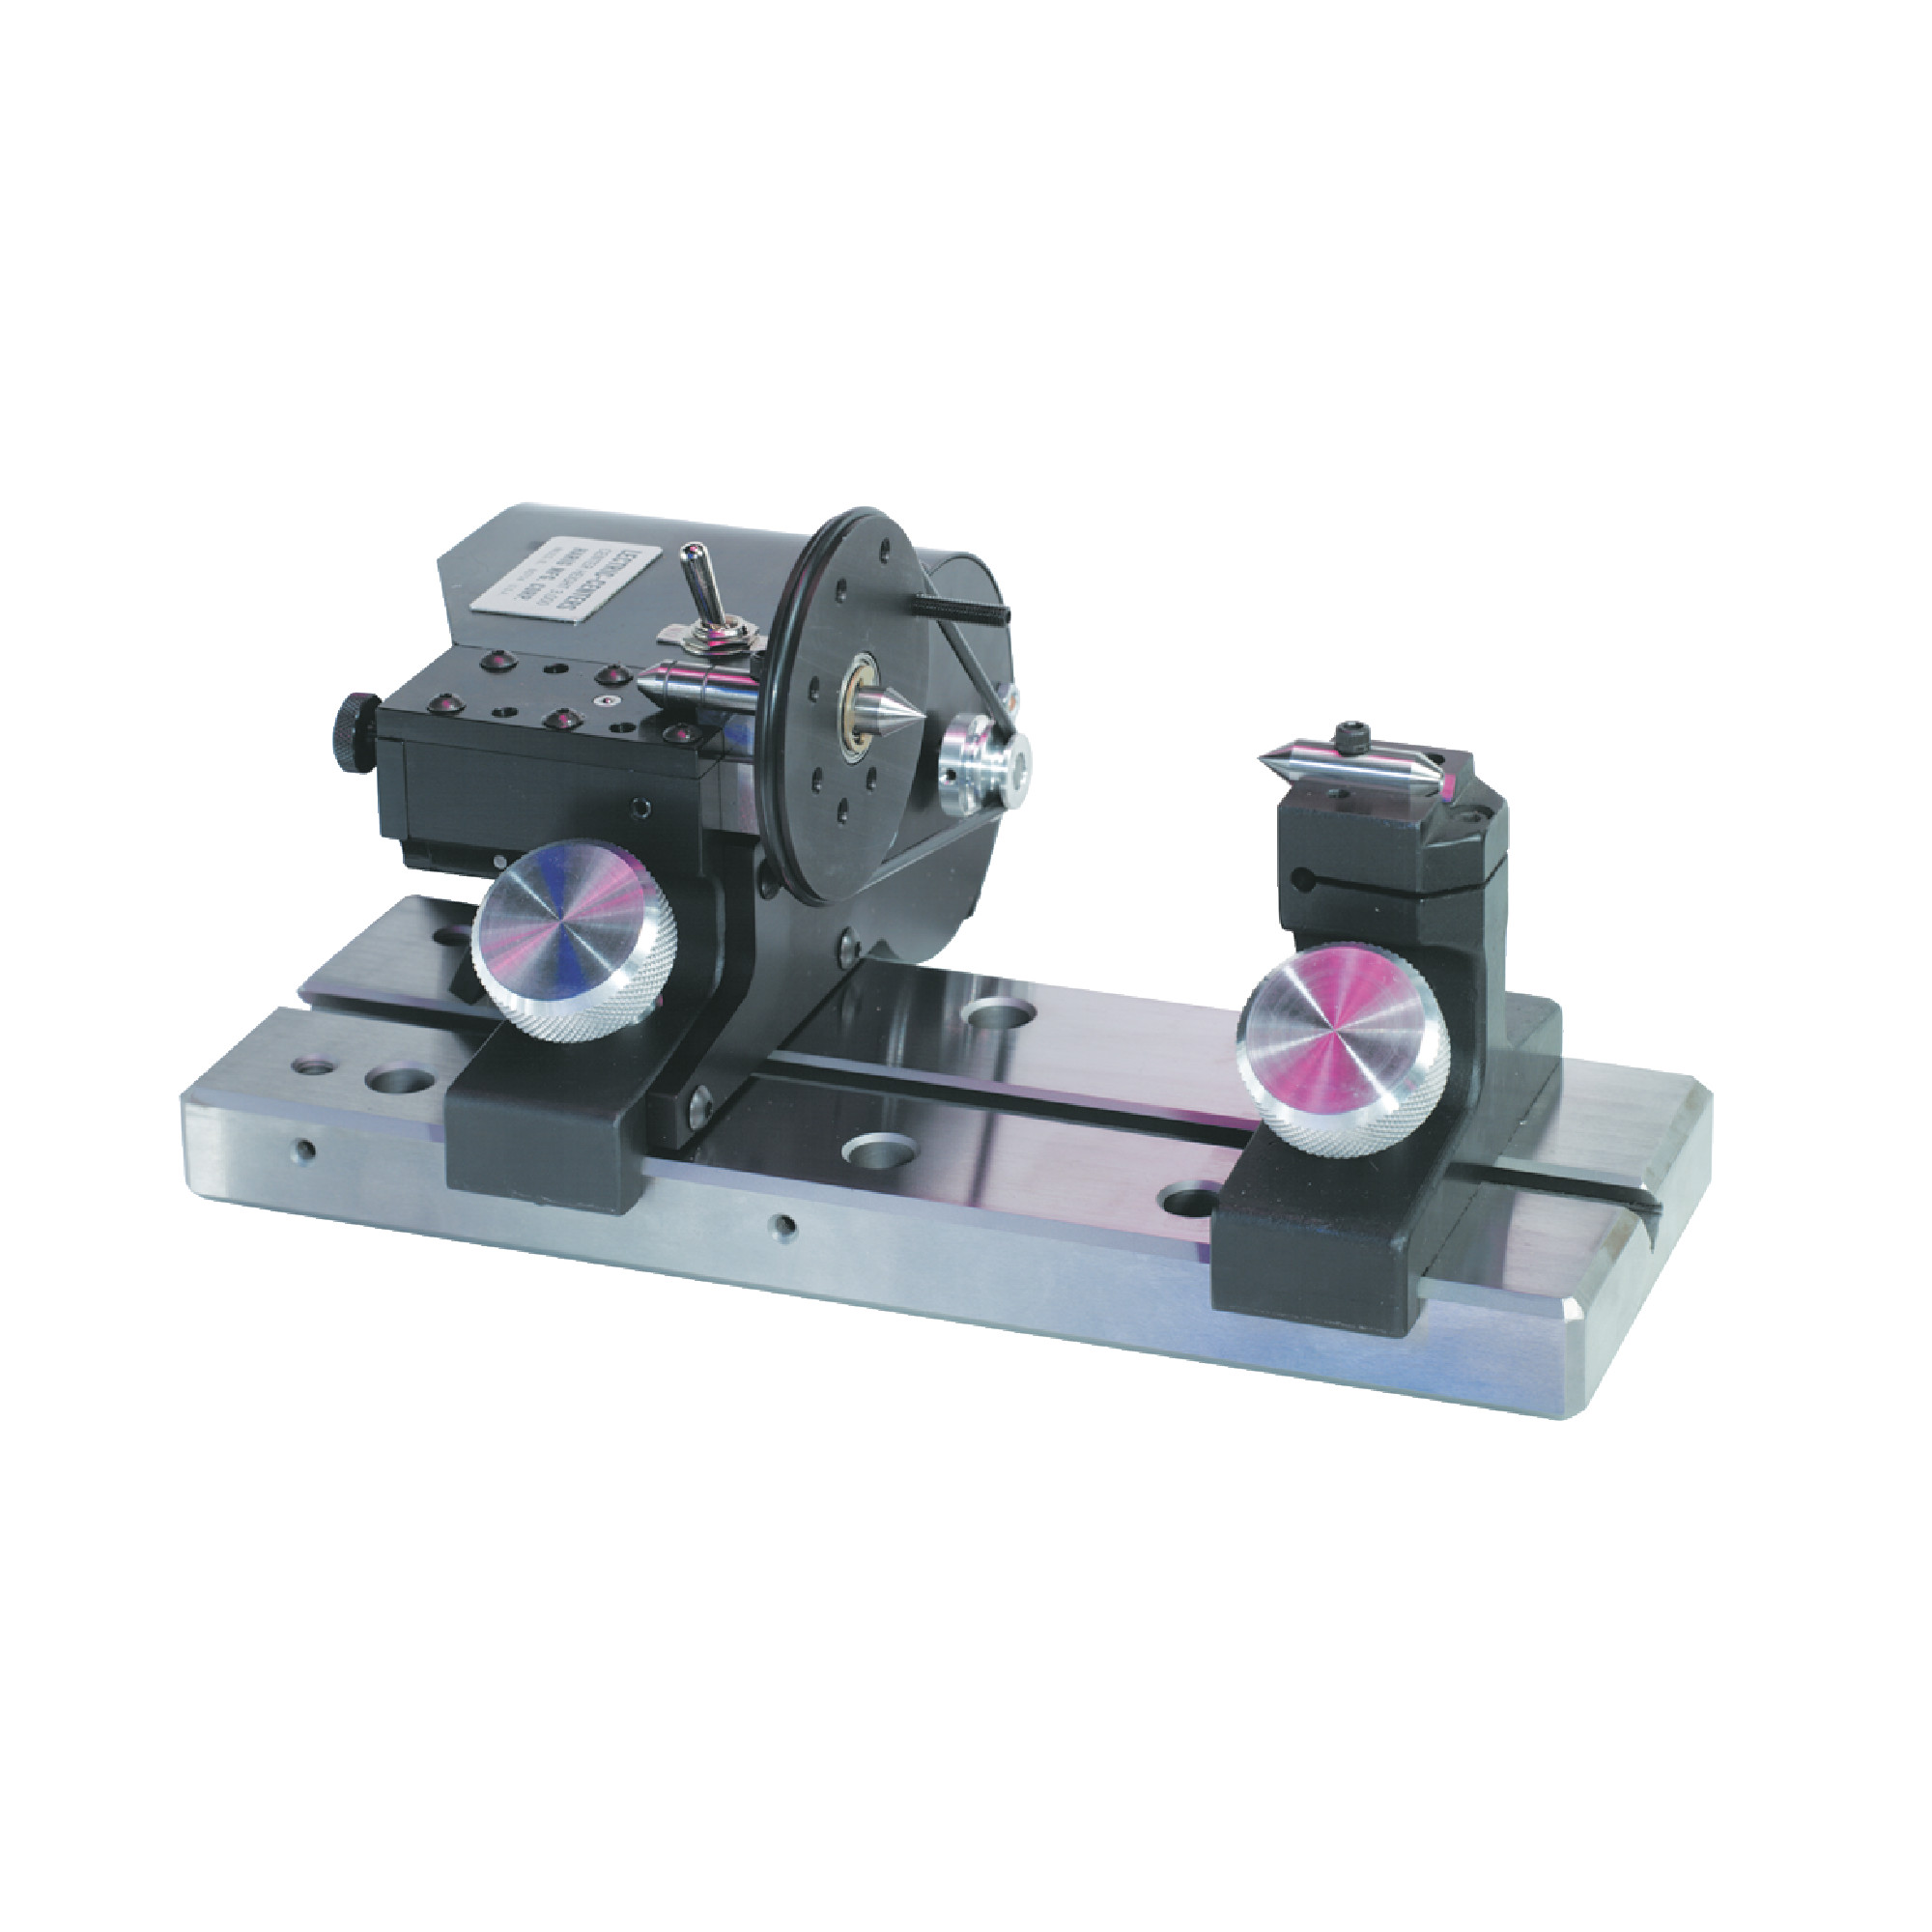 Lectric Center Cylindrical Grinding Fixture